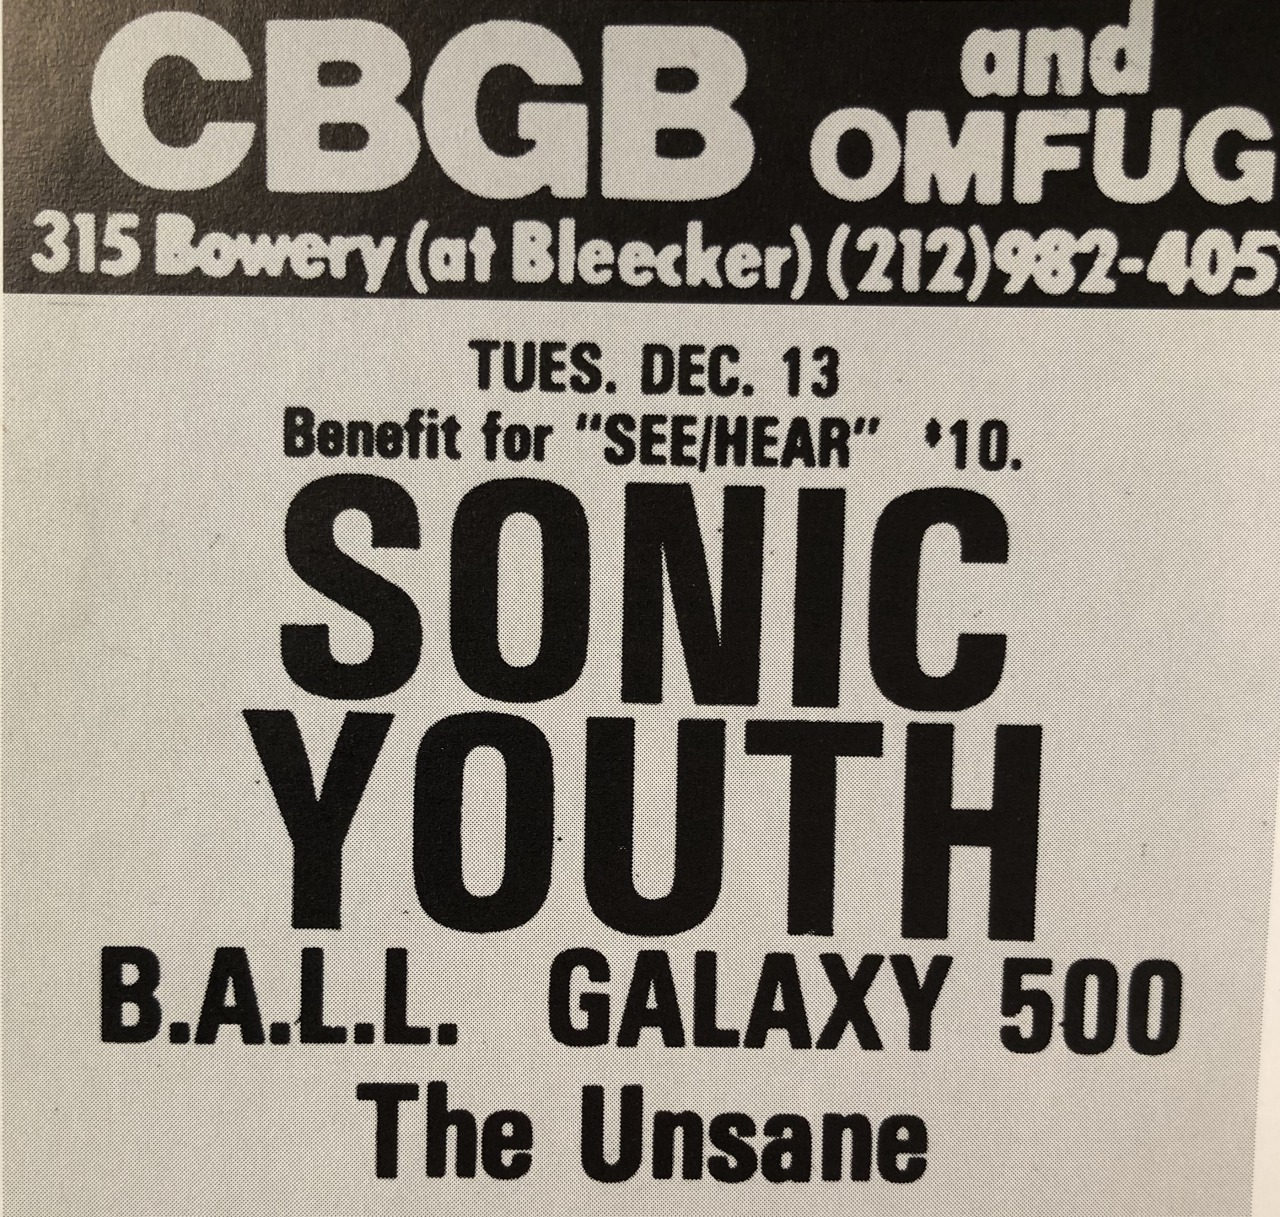 Print ad for the Galaxie 500 show